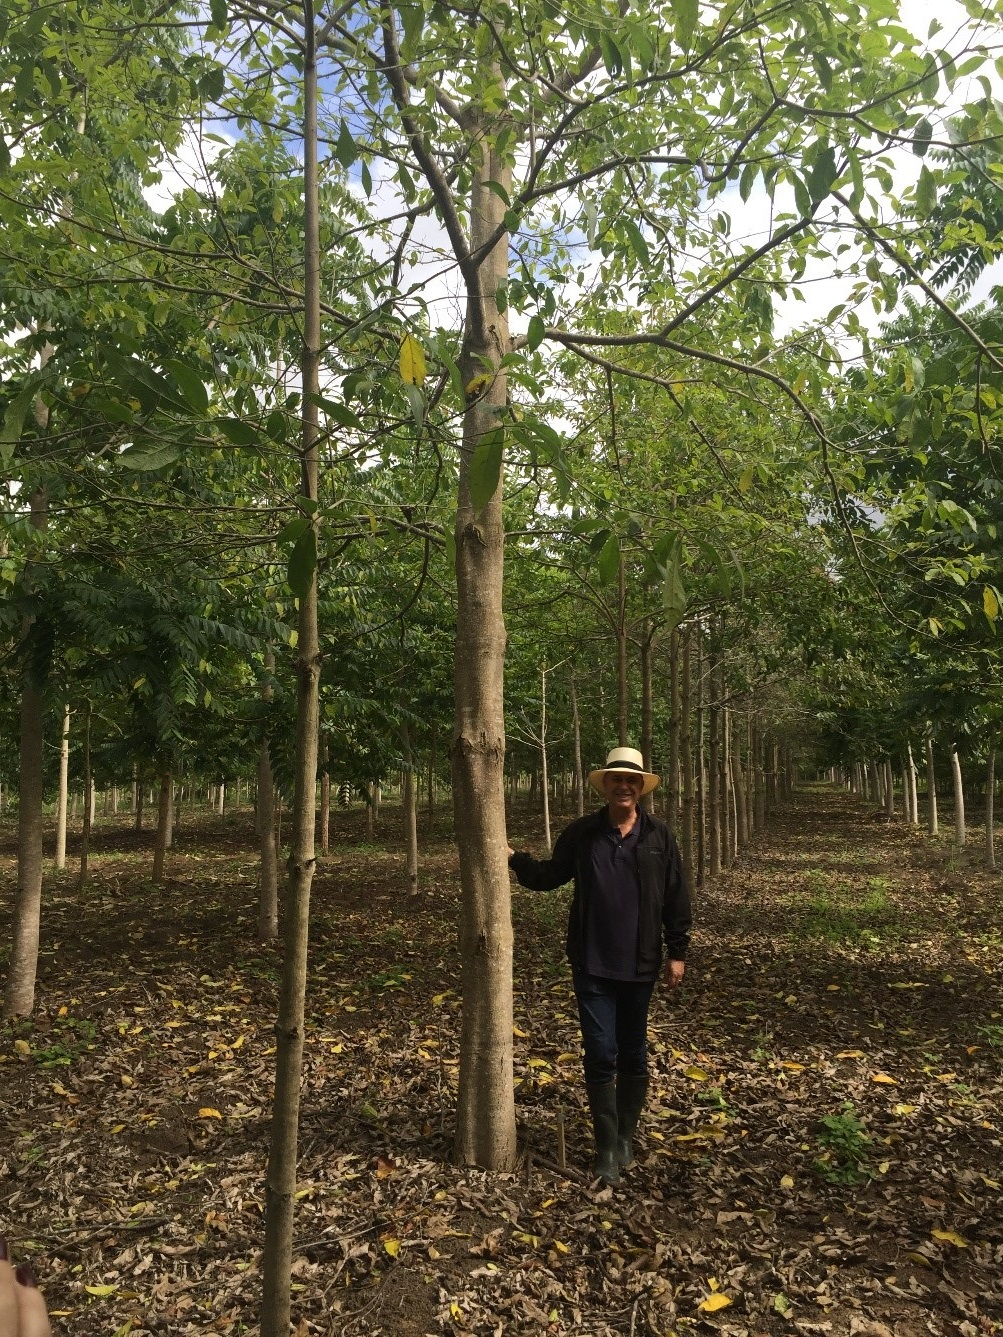 <p>A three-and-a-half-year-old Louro Pardo (Cordia trichotoma) tree, Symbiosis farm, state of Bahia, Brazil. Photo credit: Miguel Calmon.</p>